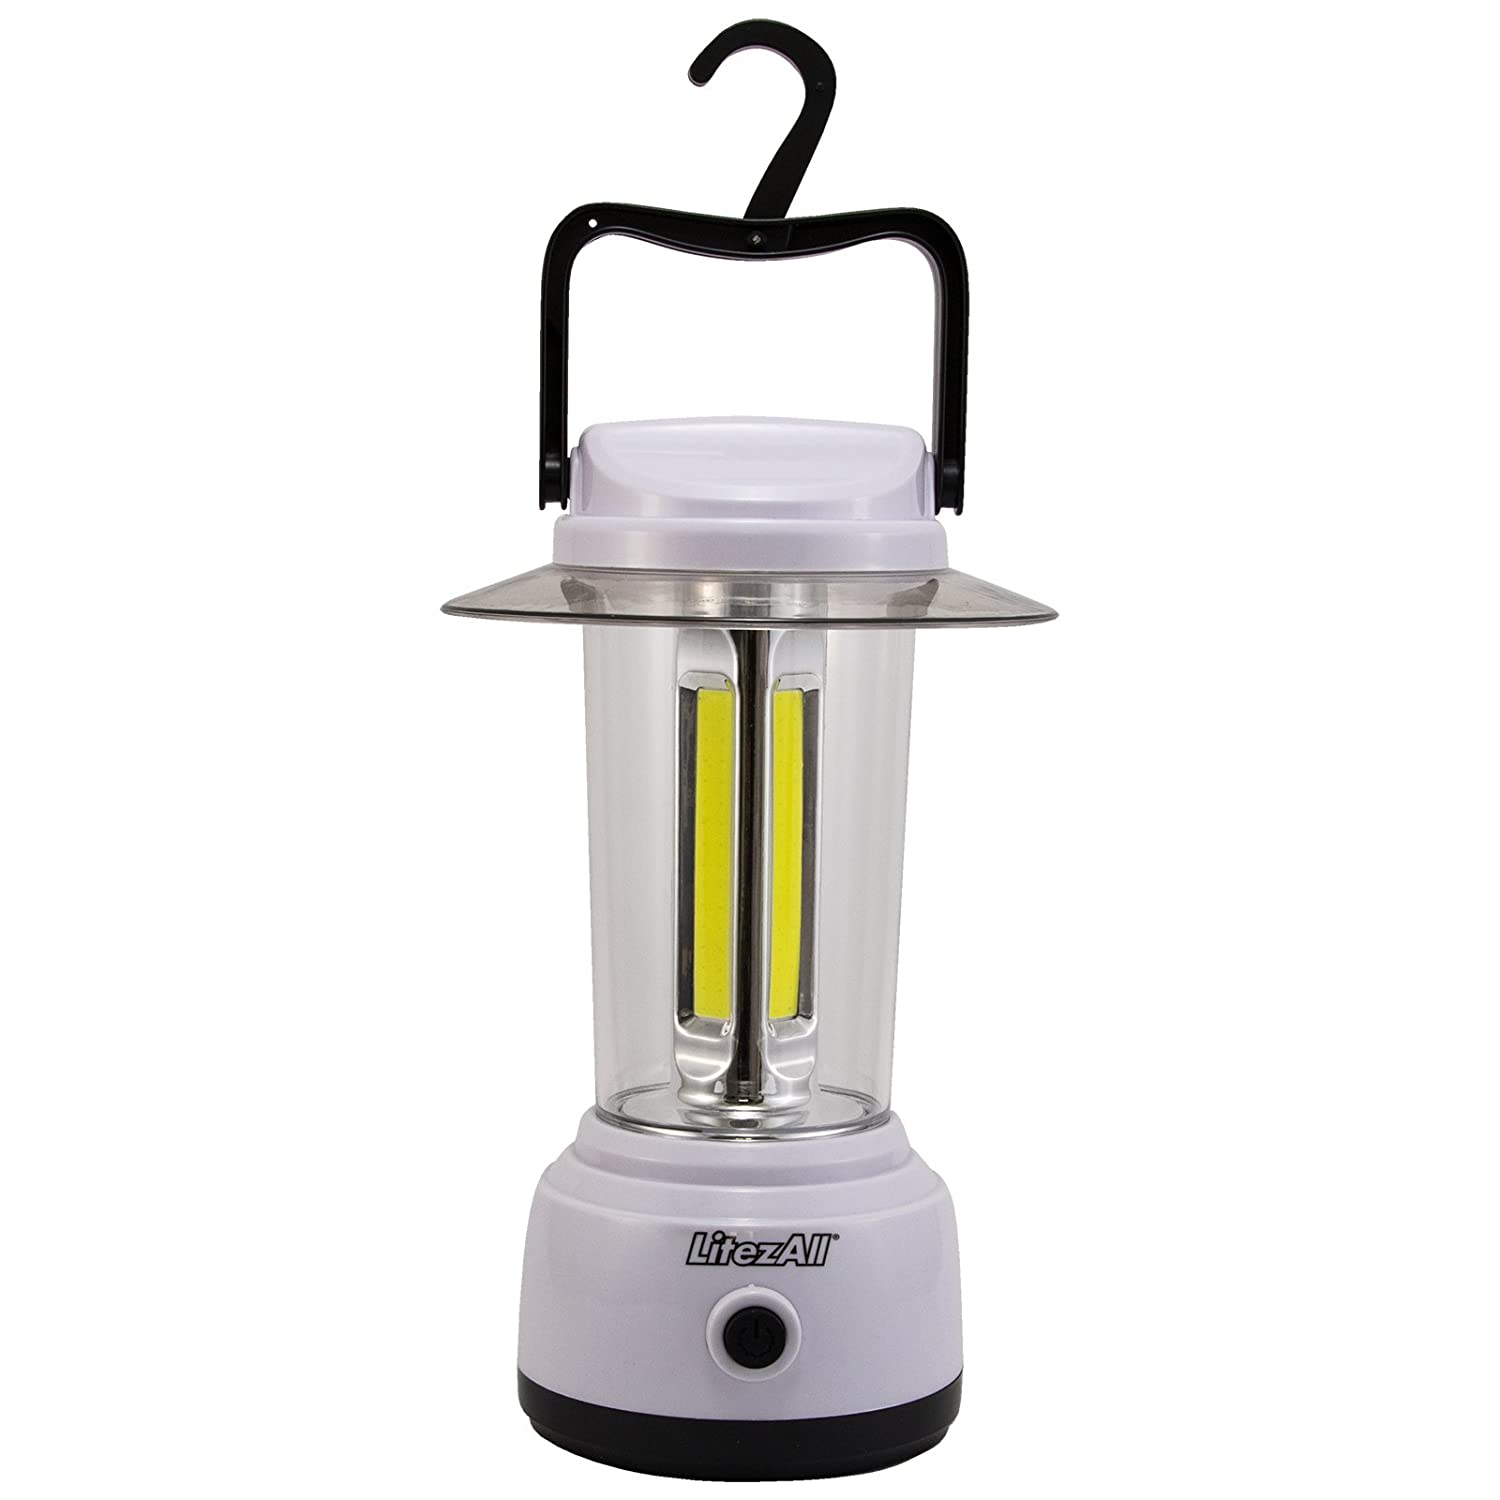 Promier LitezAll Portable COB Led Camping Lantern – 1750 Lumen Brightness 5-Mode Battery Powered – Tent Camping, Fishing, Emergency, Survival Kit for Hurricane, Storm or Outage Batteries Included